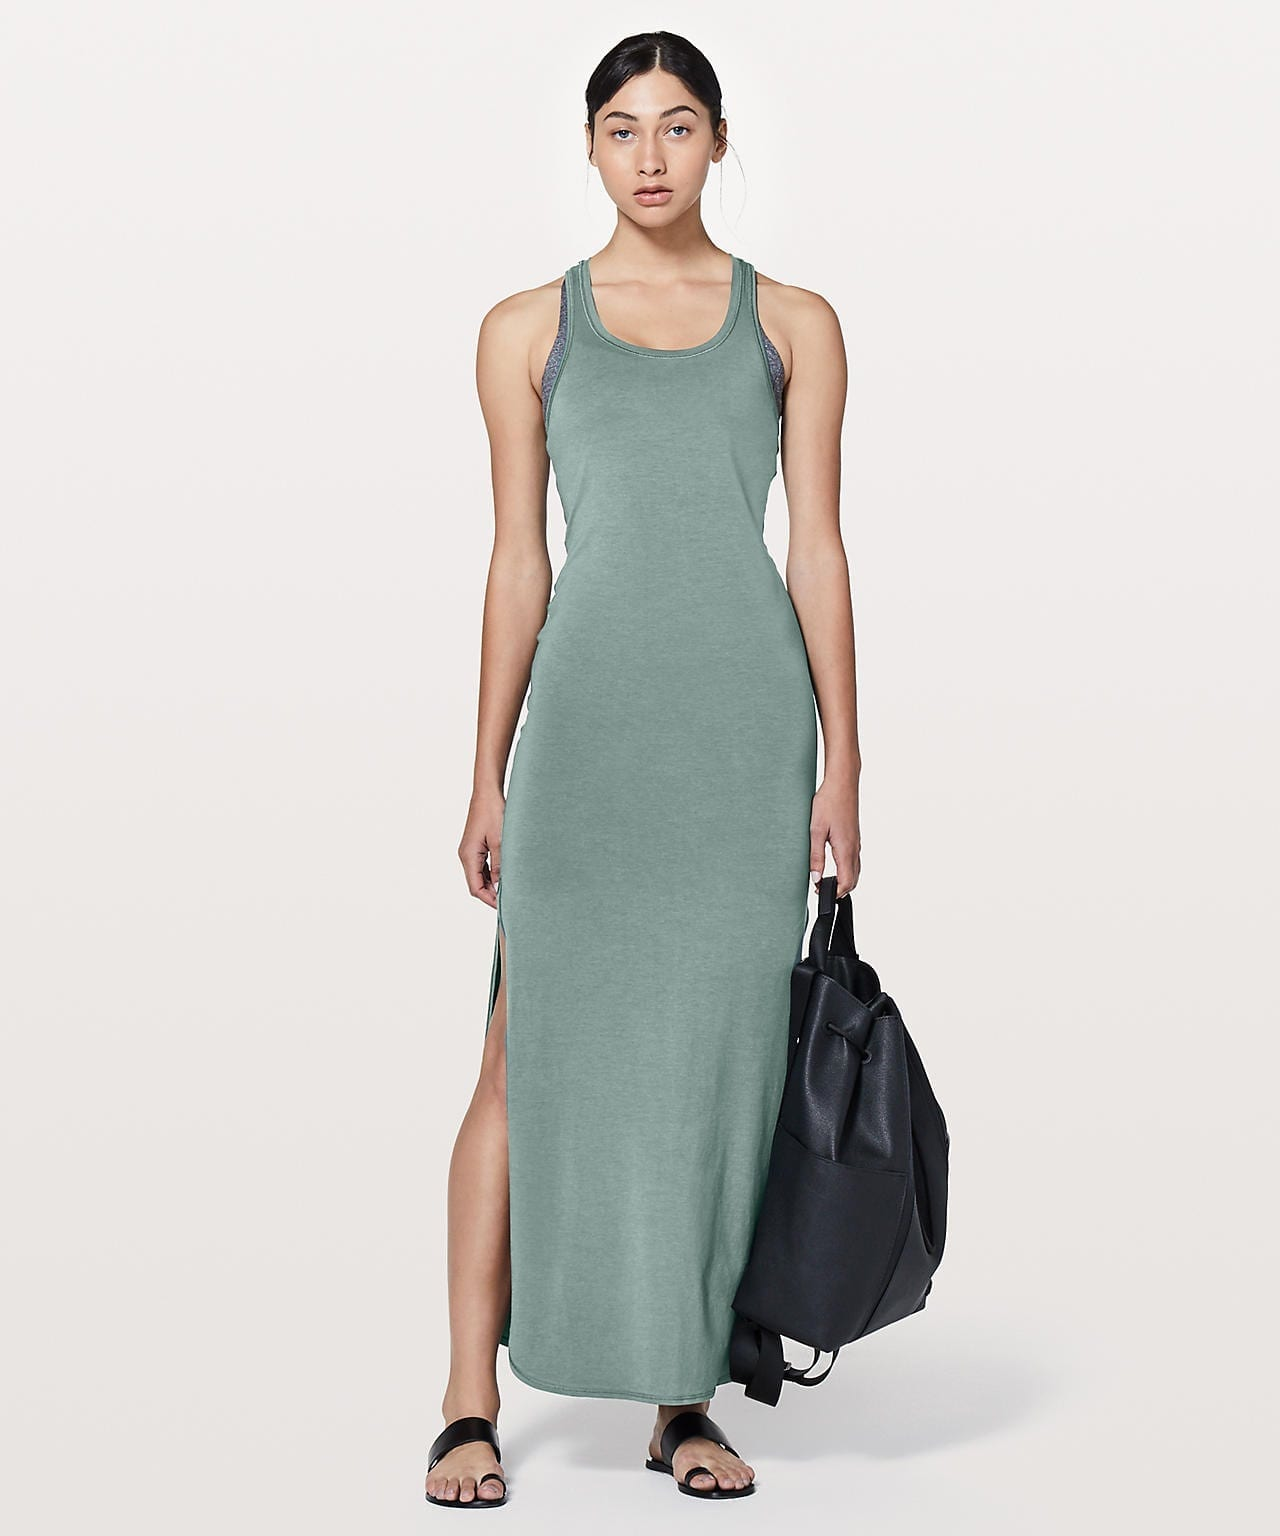 Lululemon Restore & REvitalize Dress